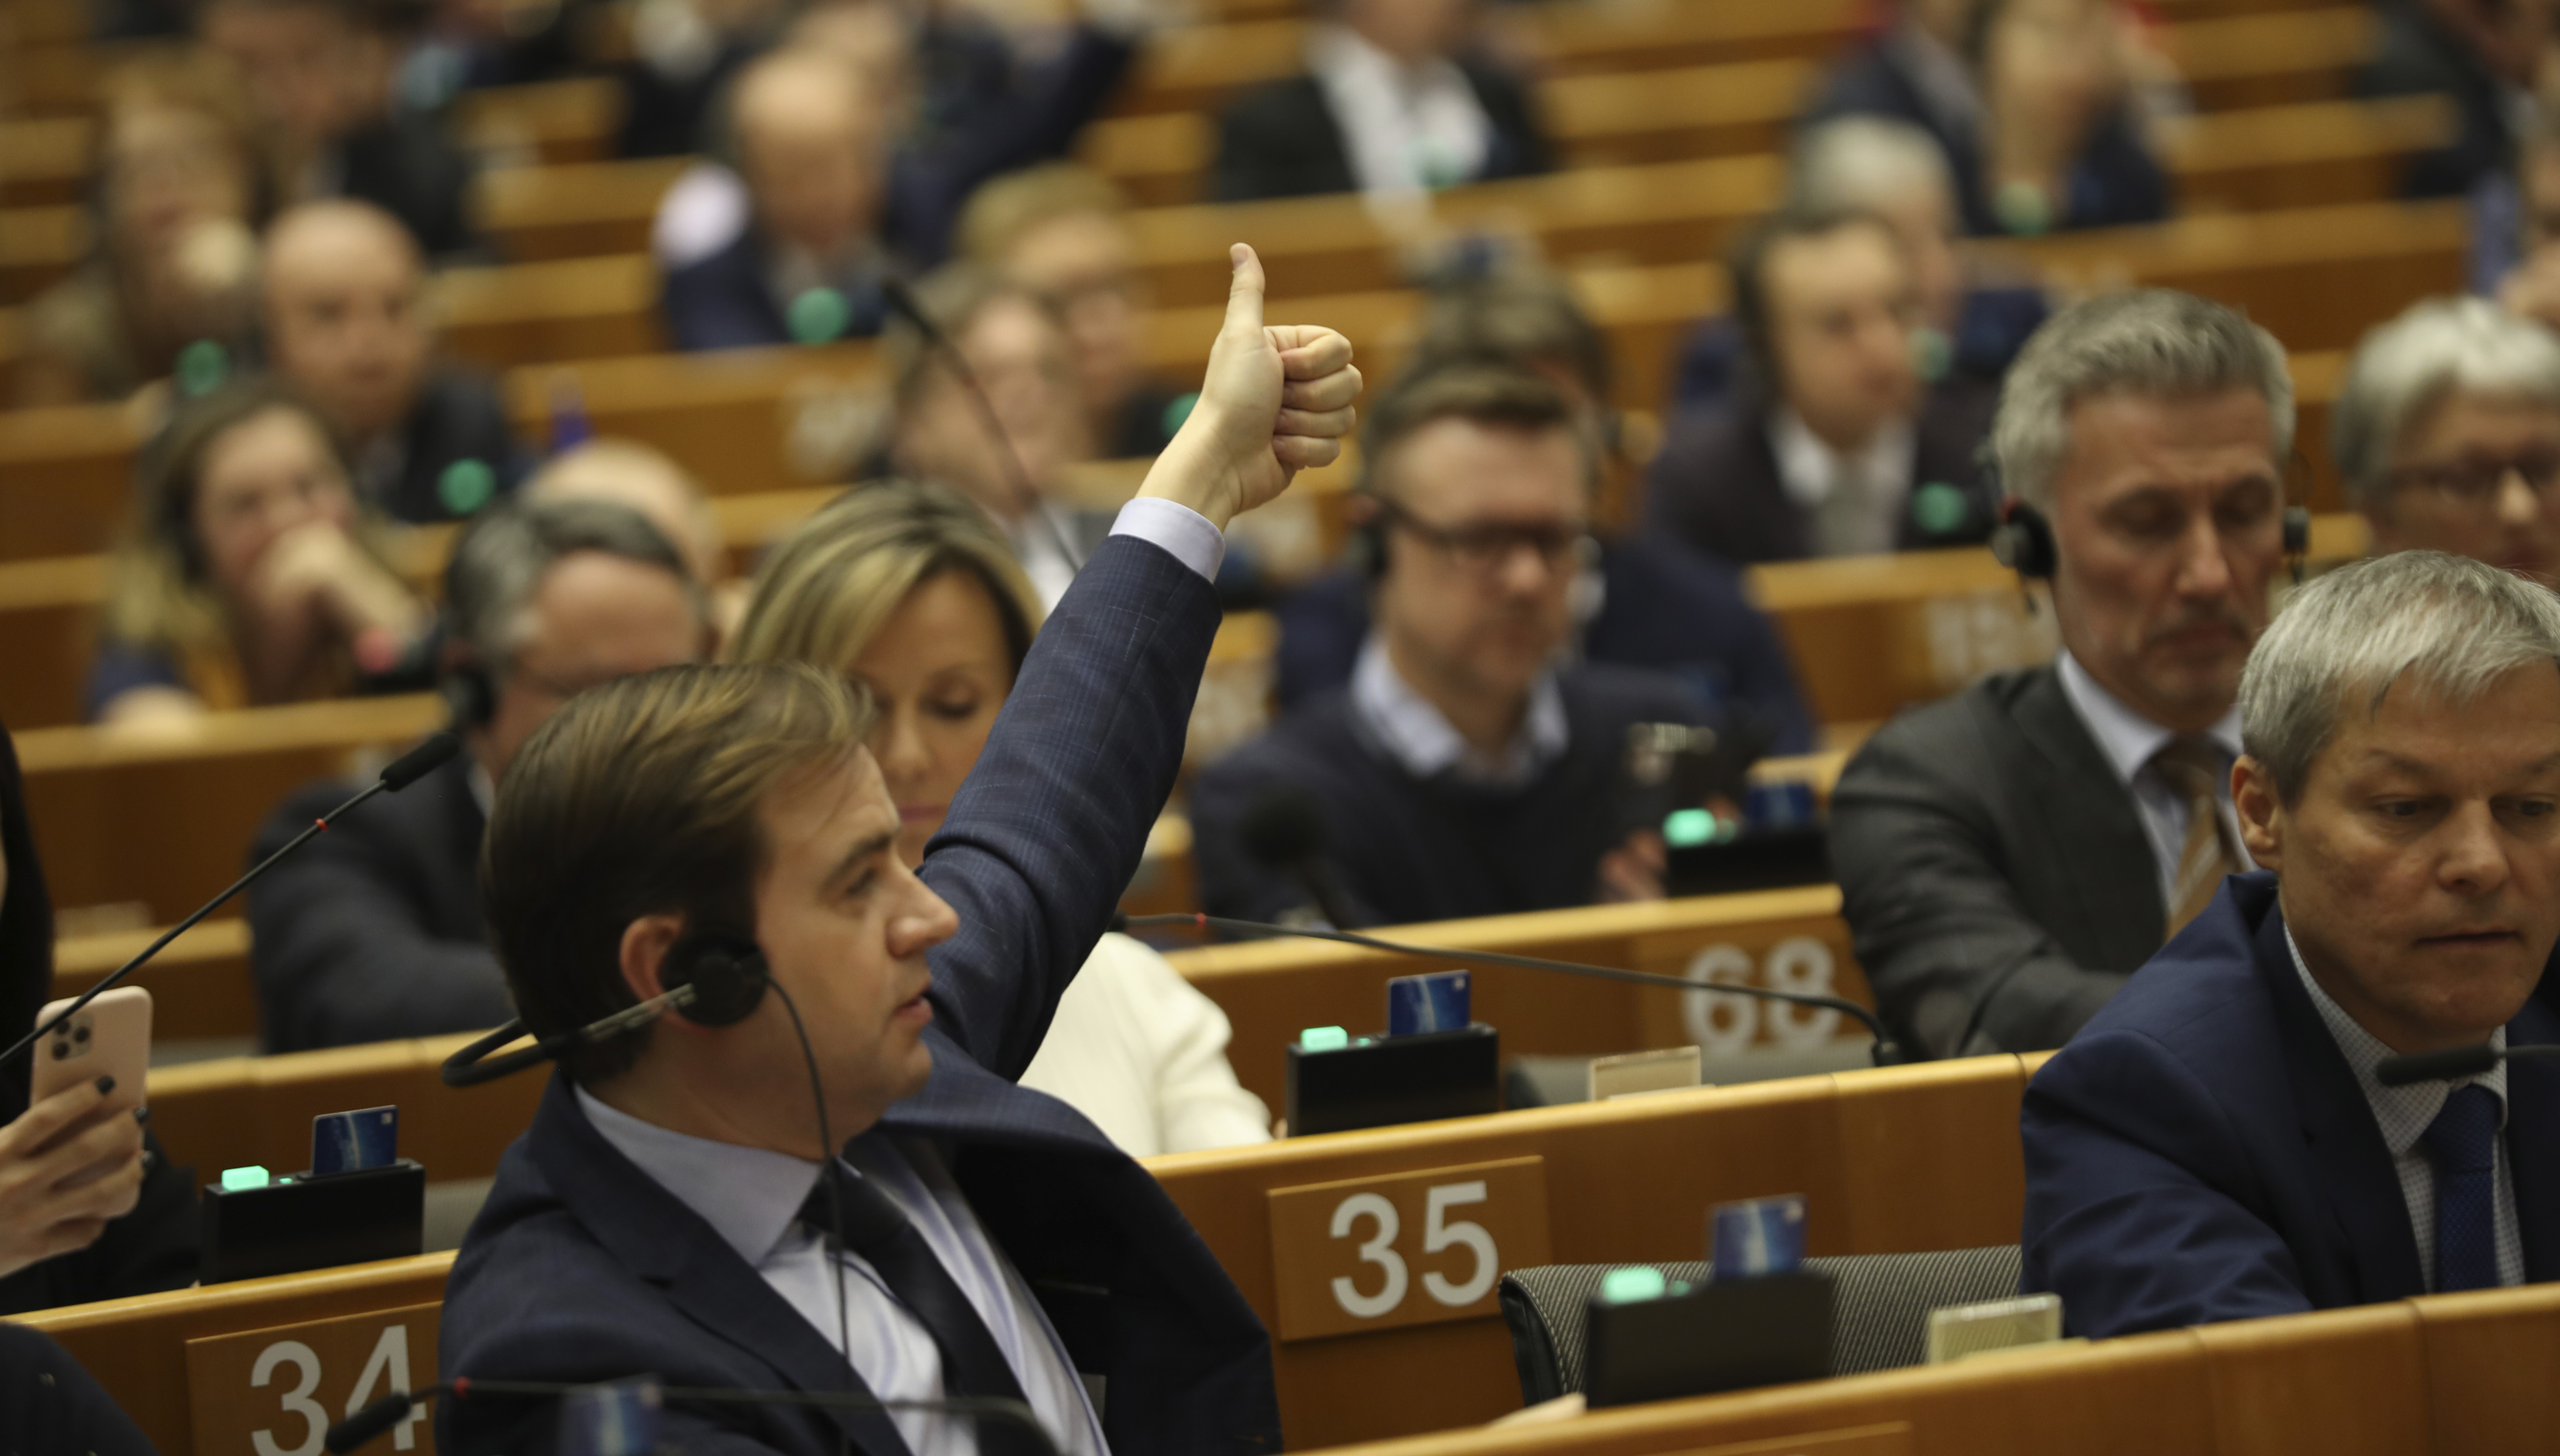 MEPs vote on the UK's withdrawal from the EU, the final legislative step in the Brexit proceedings, during the plenary session at the European Parliament in Brussels, Wednesday, Jan. 29, 2020. (AP Photo/Francisco Seco, Pool)